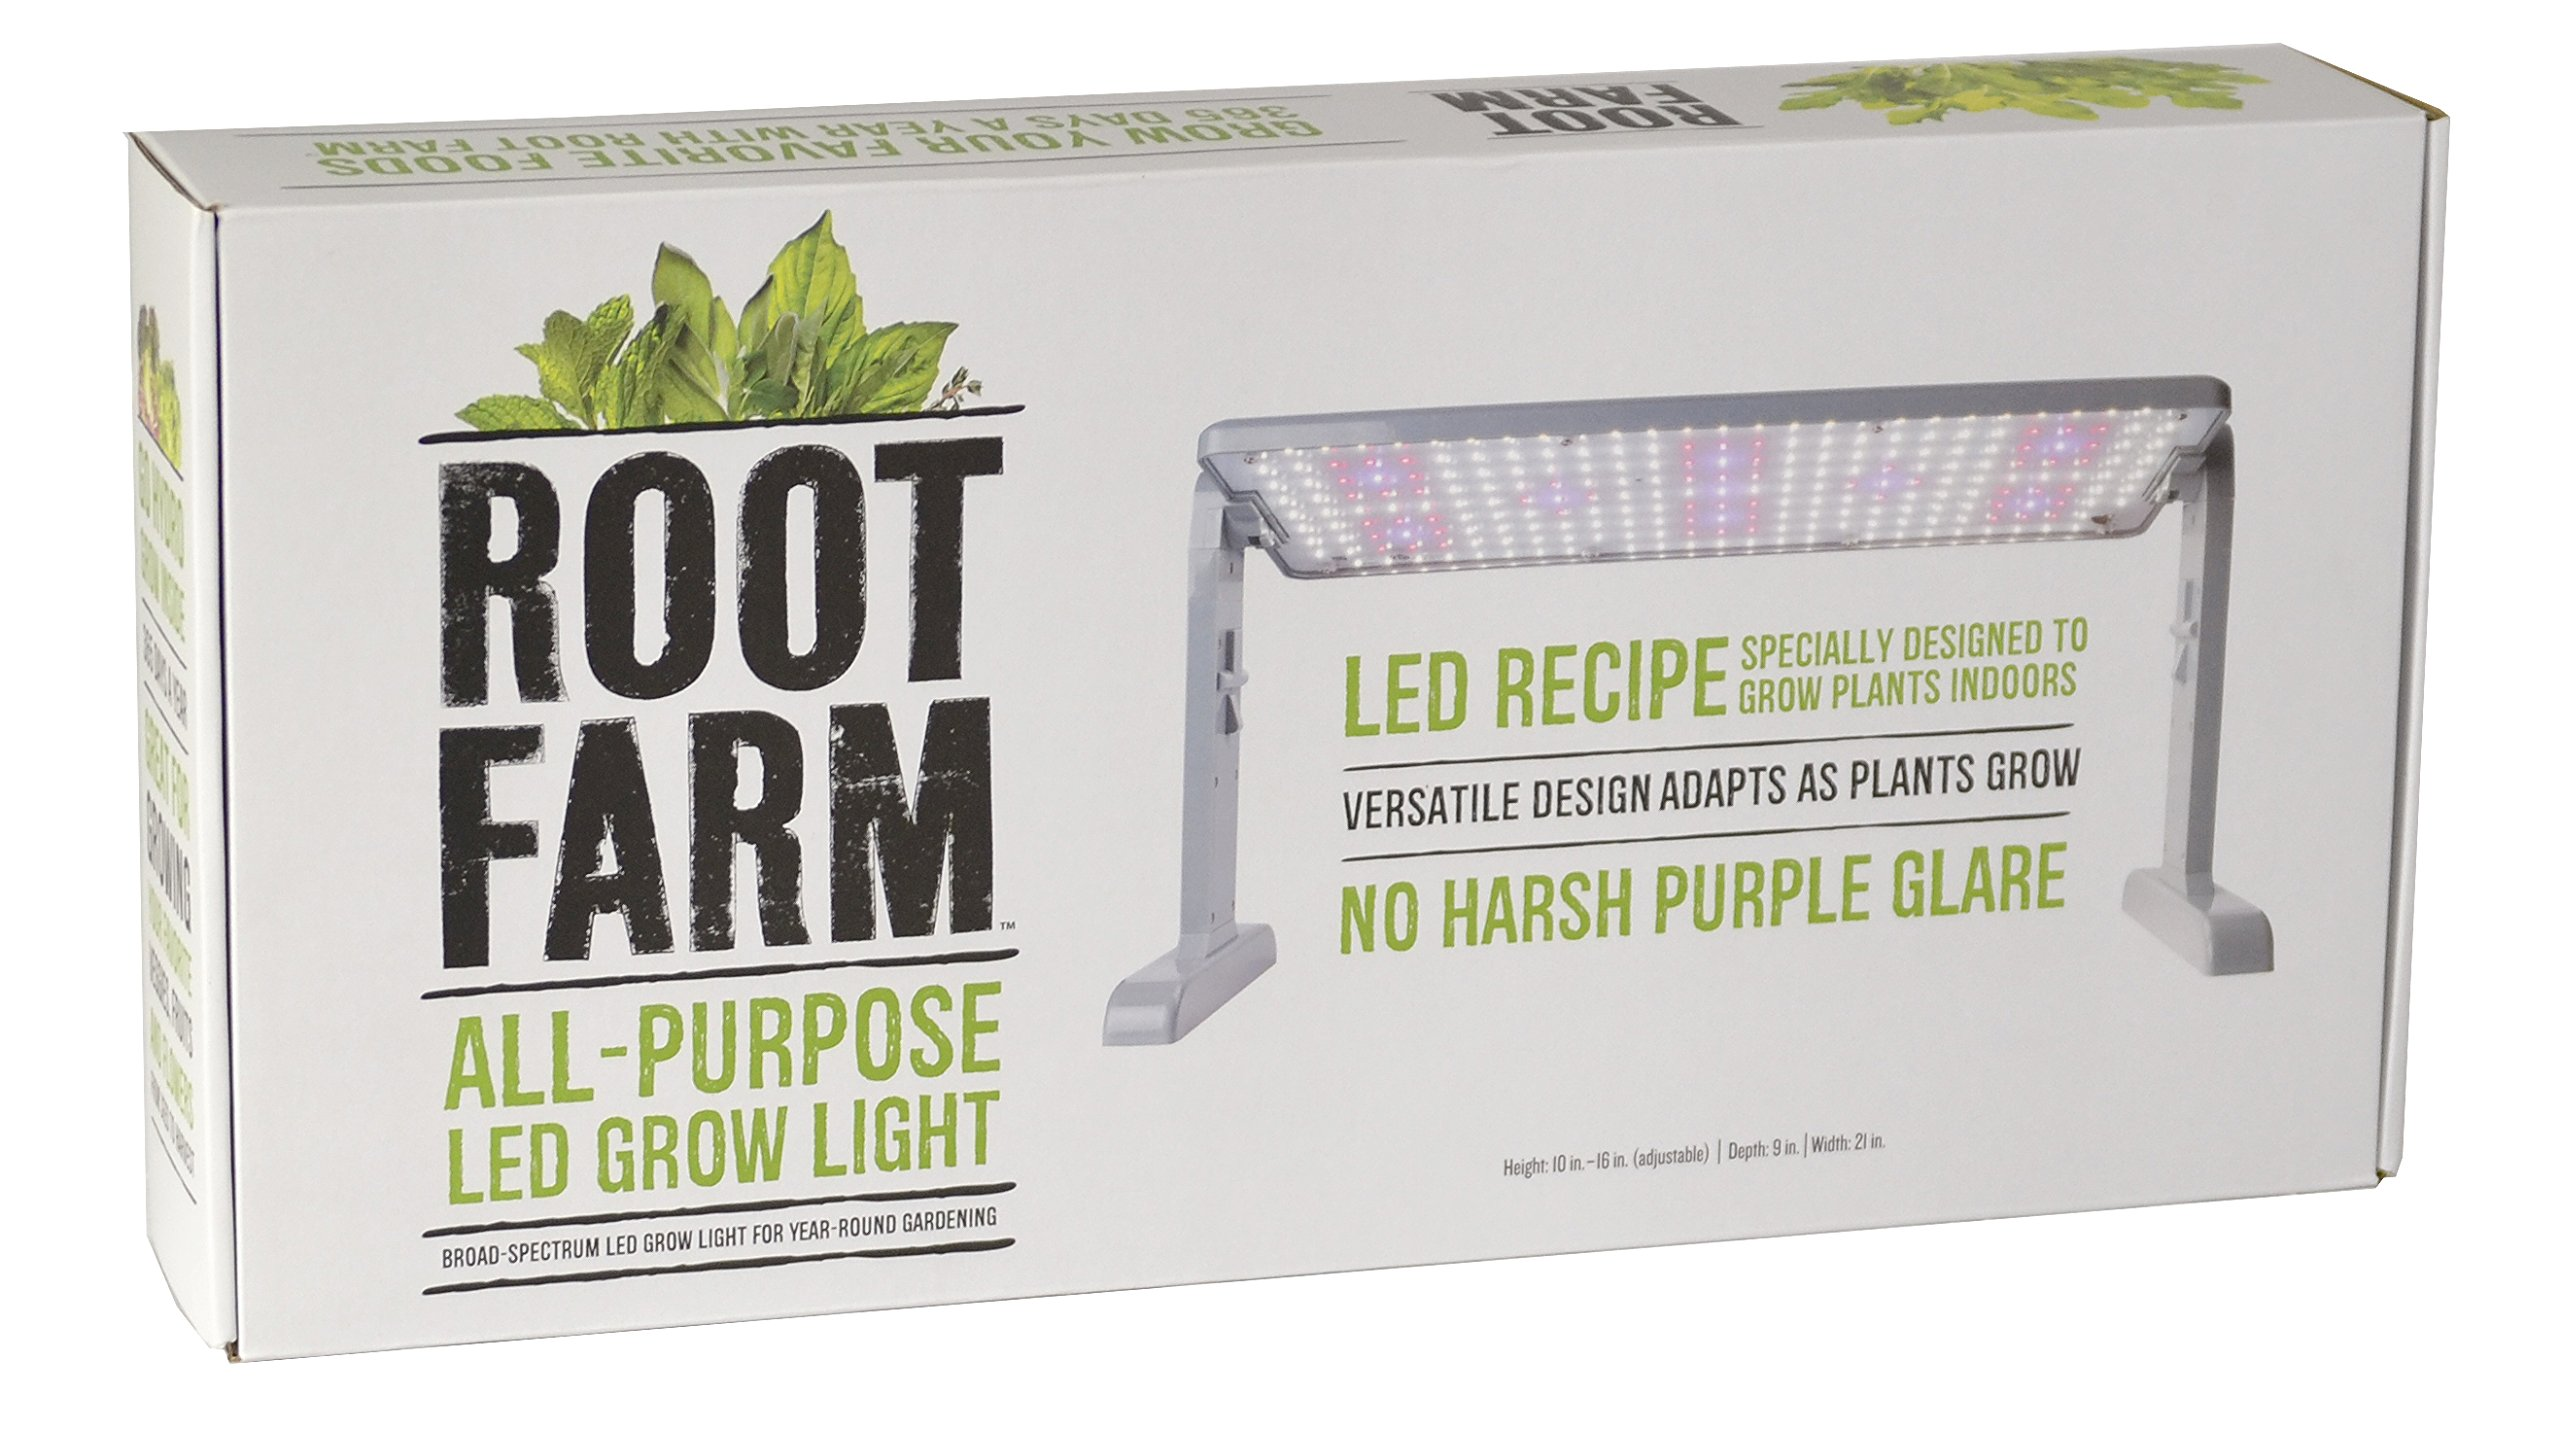 Root Farm LED Grow Light 45W